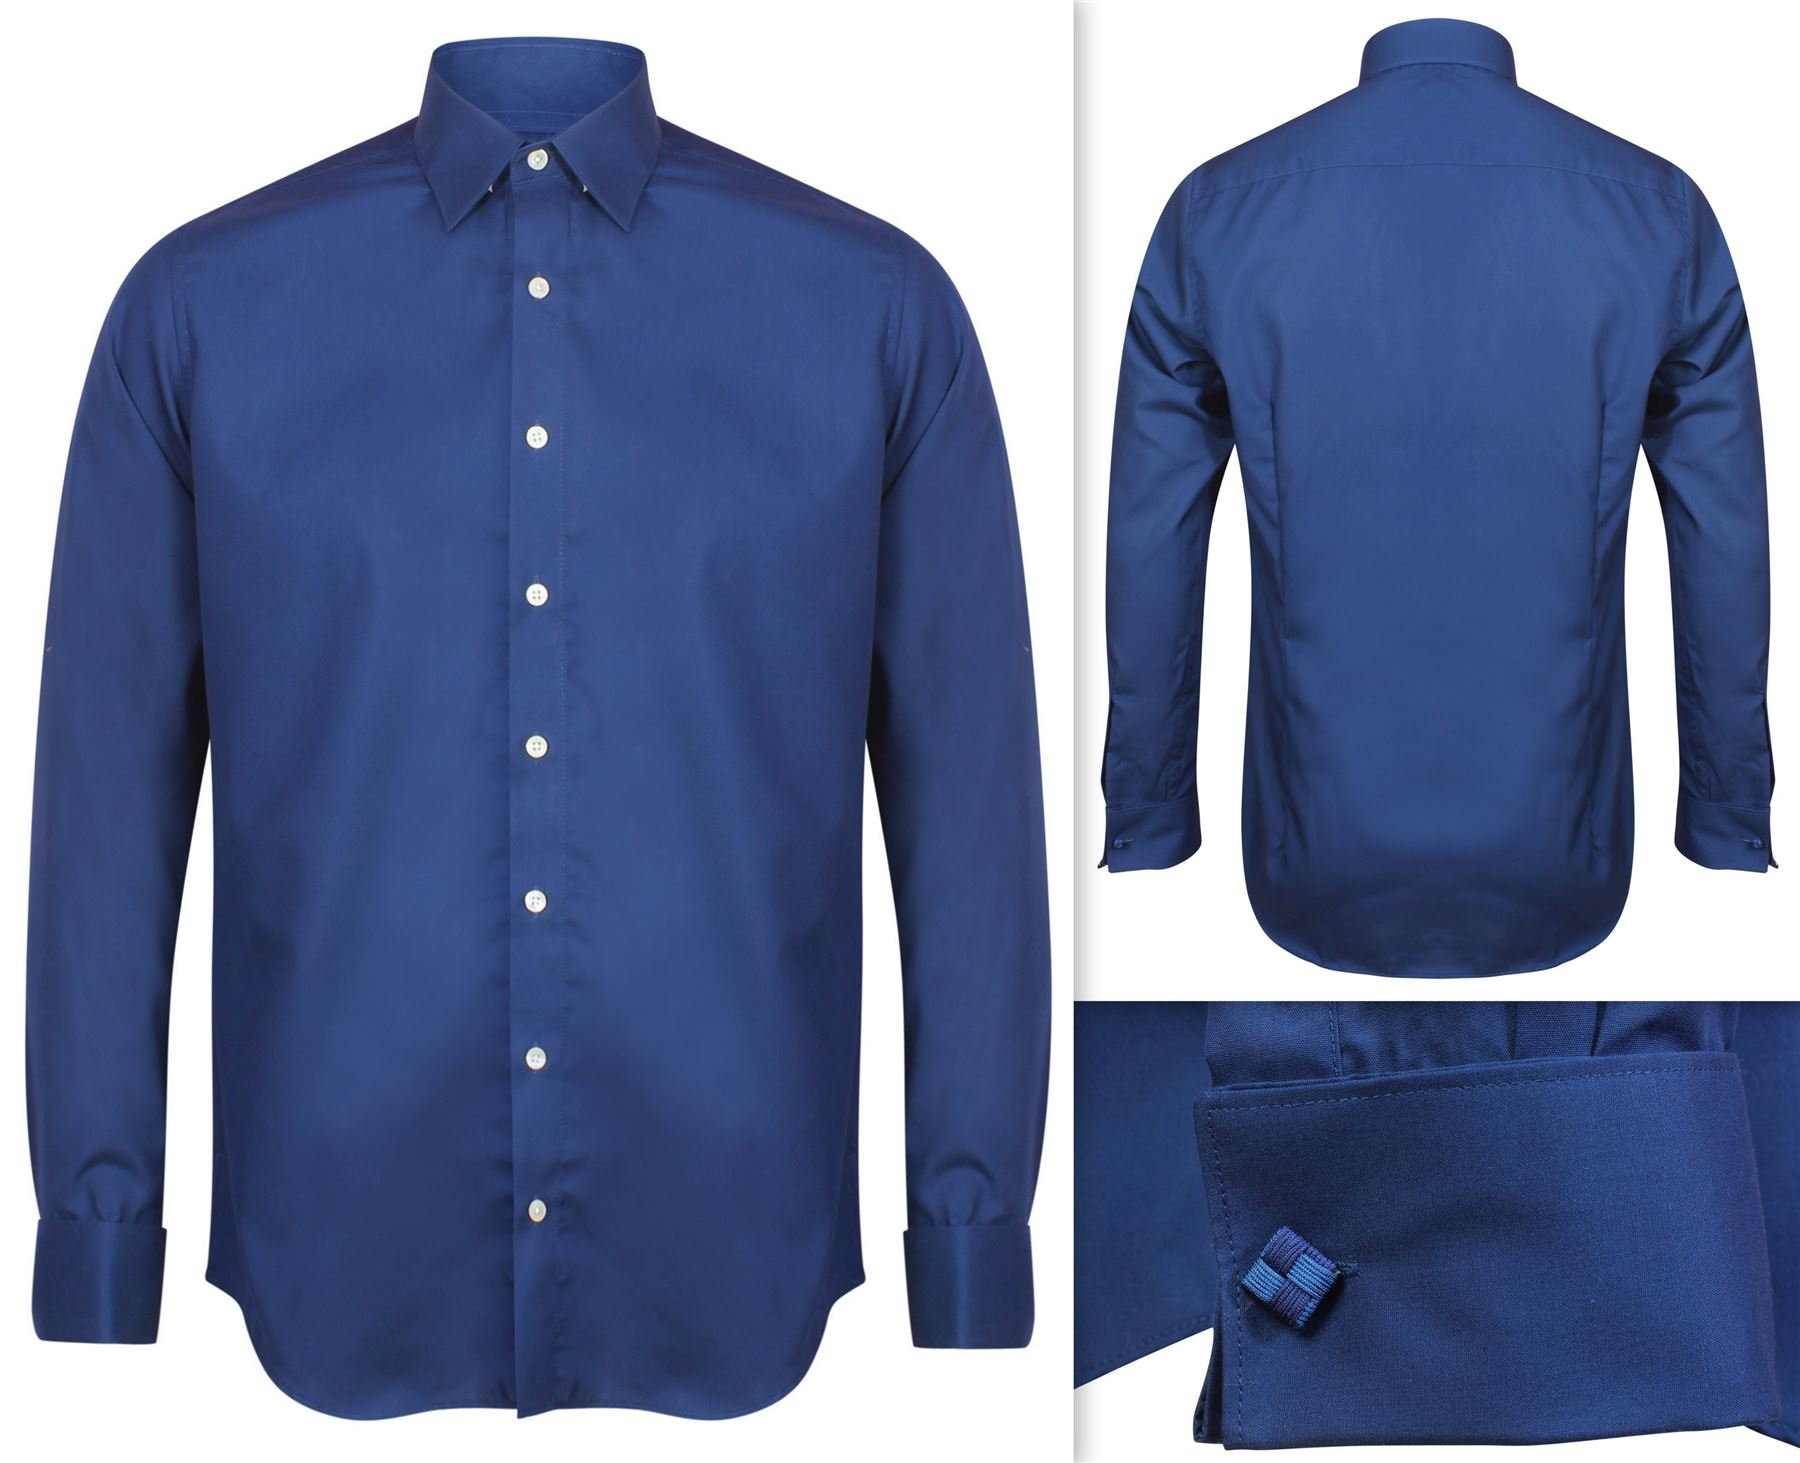 Mens shirt invictus slim tailored athletic body fit for Tailored shirts for men